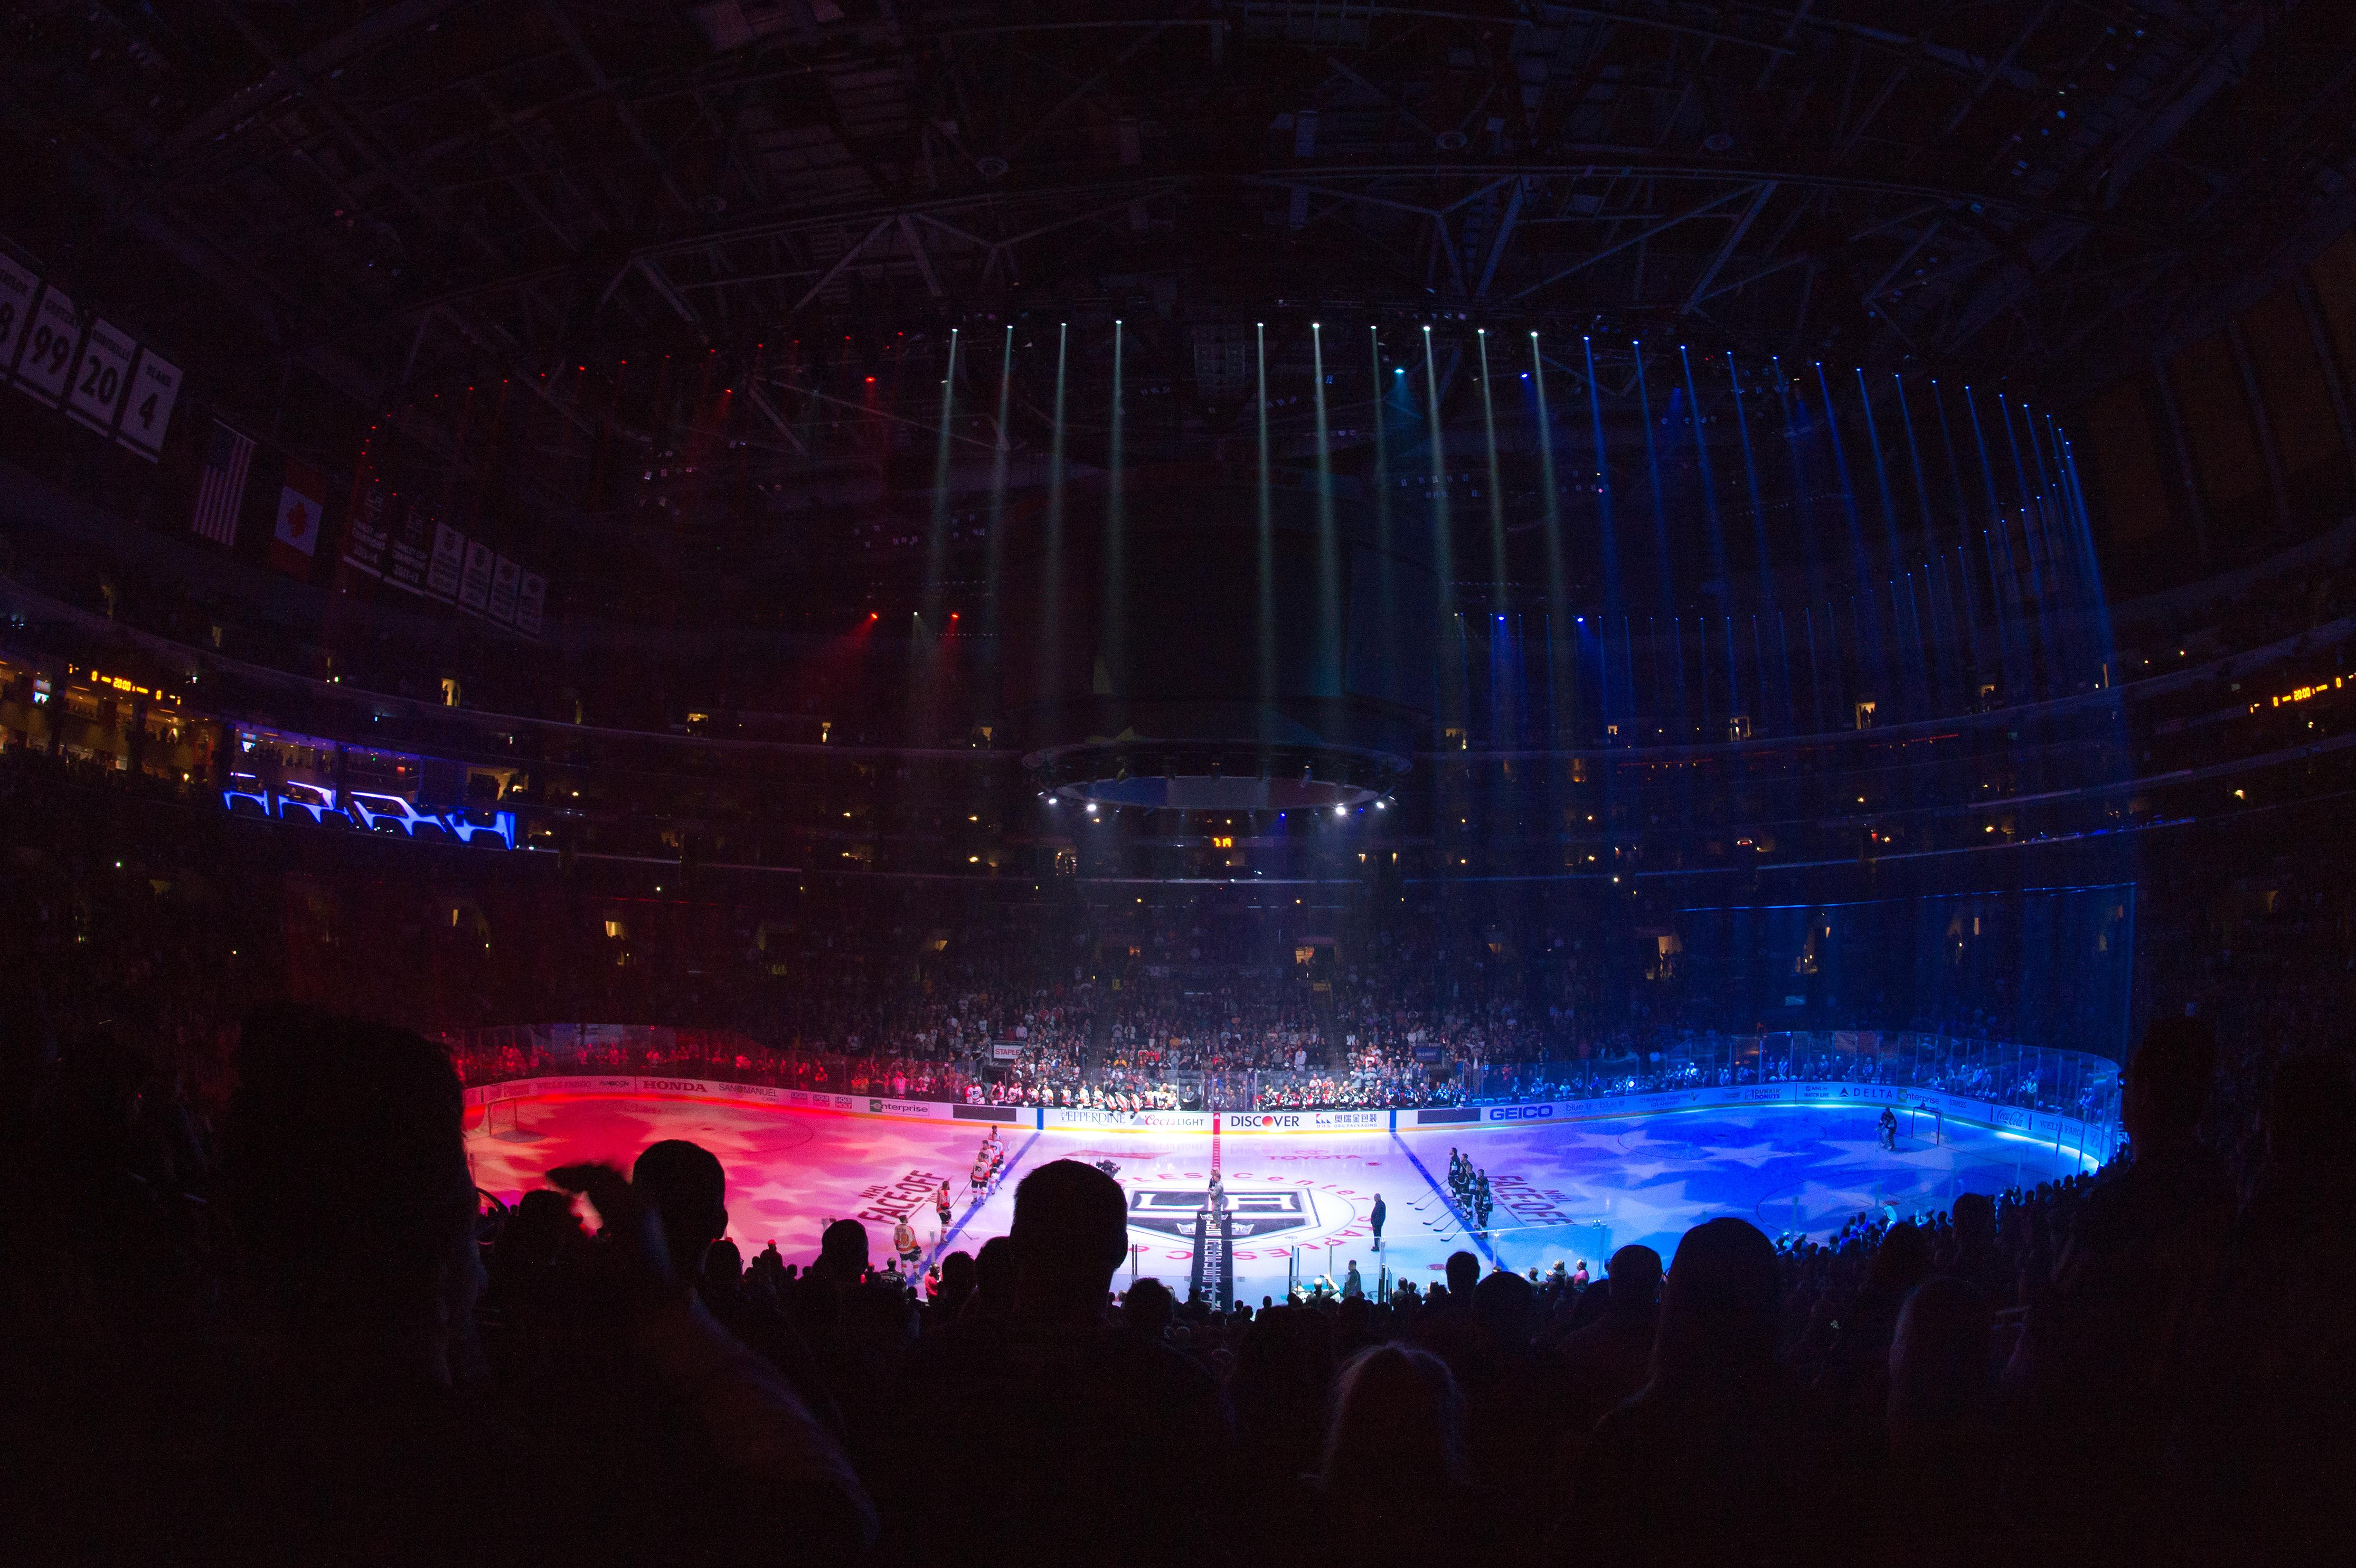 <p>A moment of silence is observed for Kings employee Christiana Duarte and other victims of the mass shooting in Las Vegas before a game between the Philadelphia Flyers and the Los Angeles Kings at STAPLES Center on Oct. 5, 2017 in Los Angeles, Calif. (Photo: Aaron Poole/NHLI via Getty Images) </p>